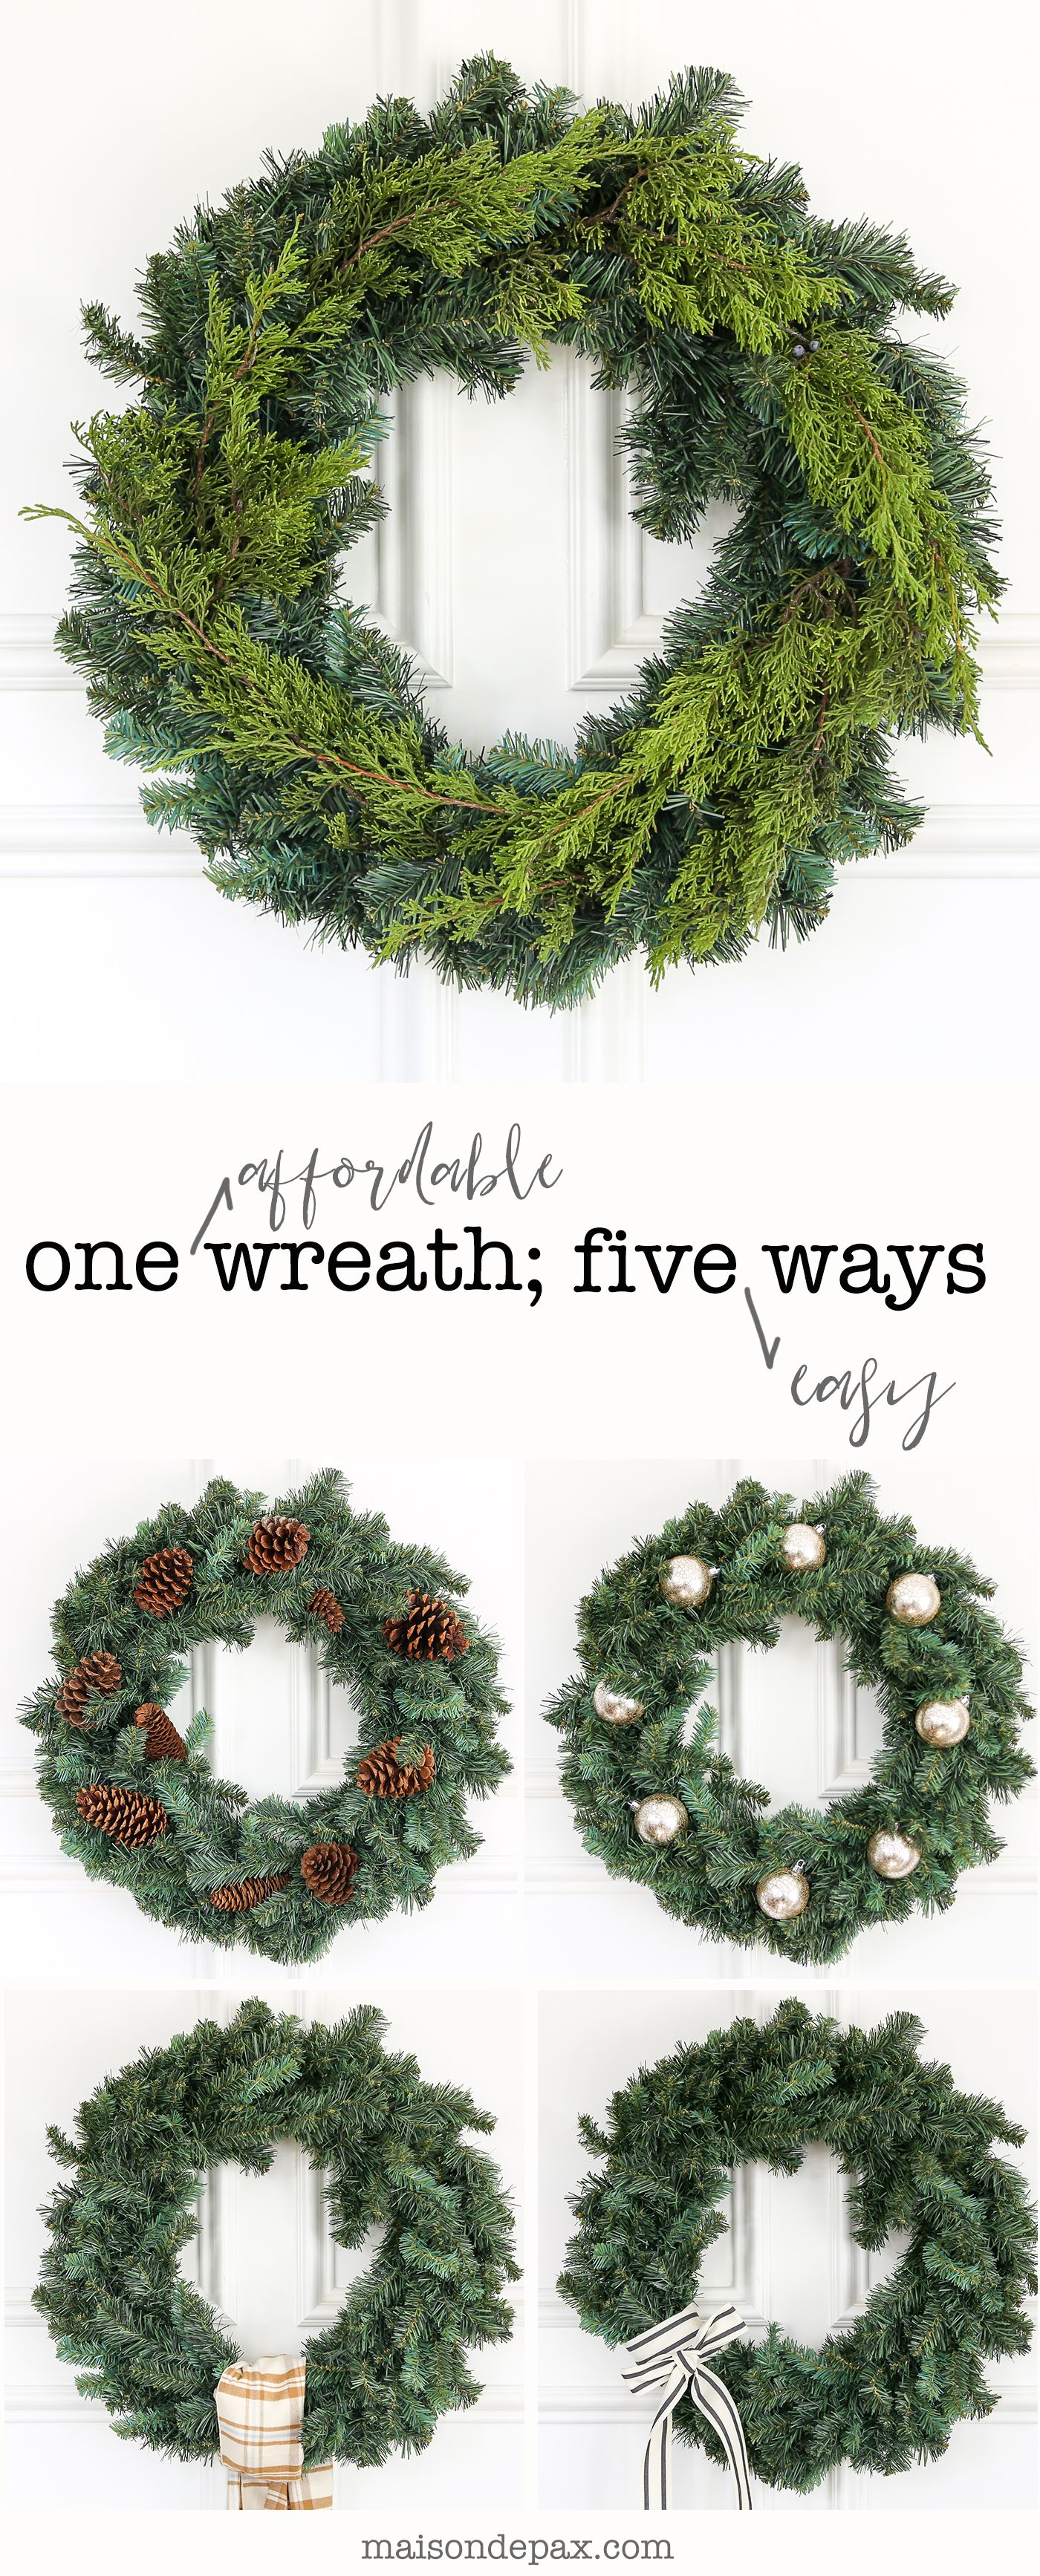 1 Affordable Wreath, 5 Easy Ways | Christmas | Pinterest | Wreaths ...